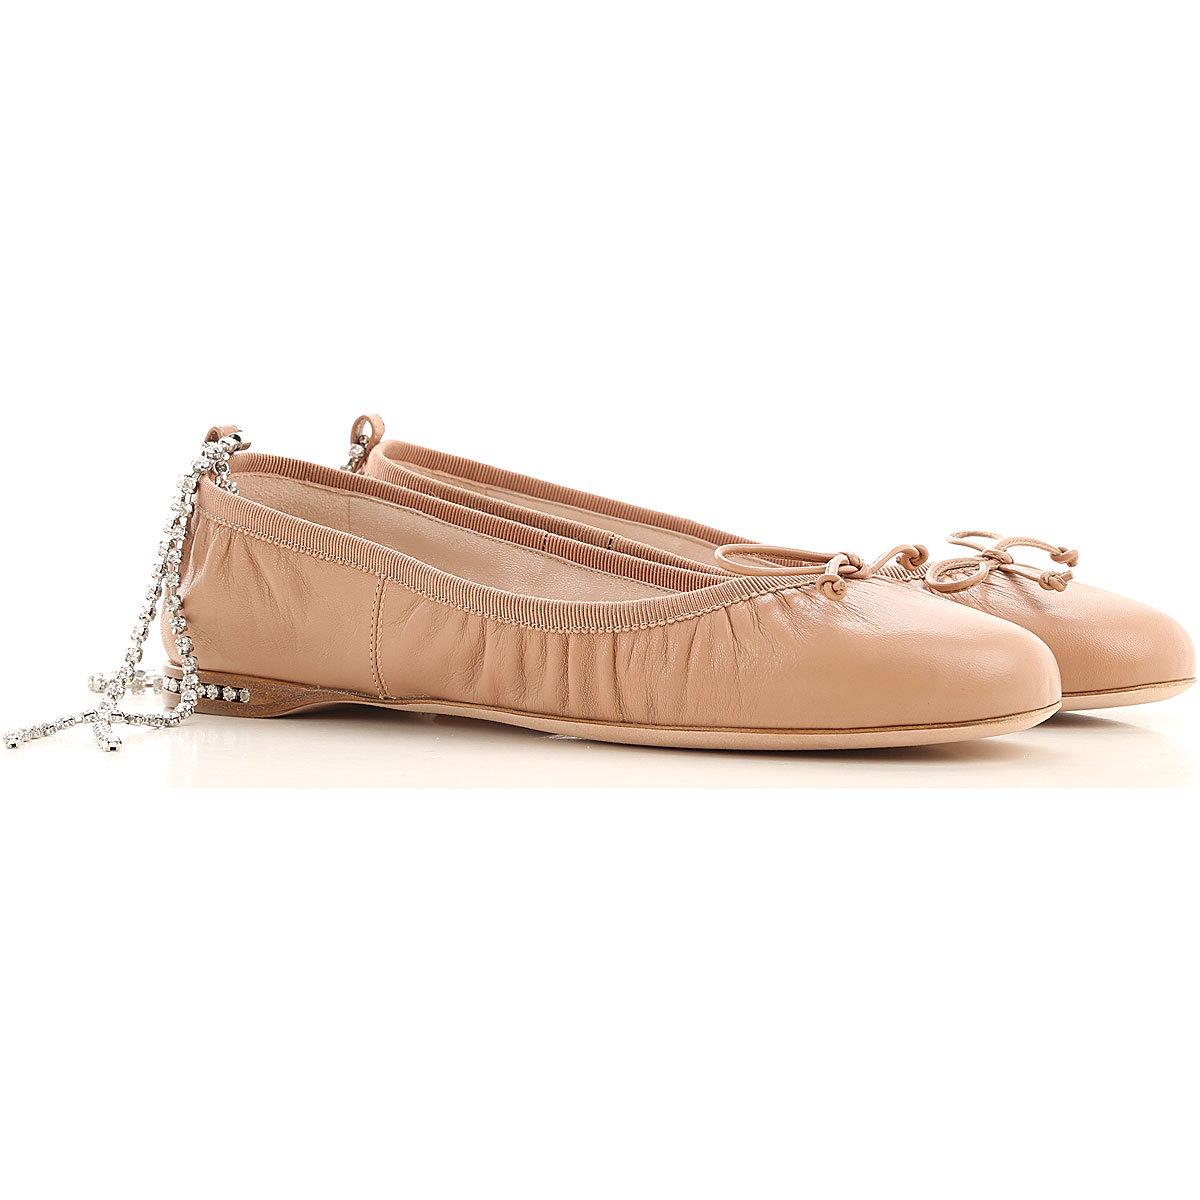 Miu Miu Ballet Flats Ballerina Shoes for Women On Sale, Nude, Leather, 2019, 10 5.5 6 6.5 7 7.5 8 8.5 9